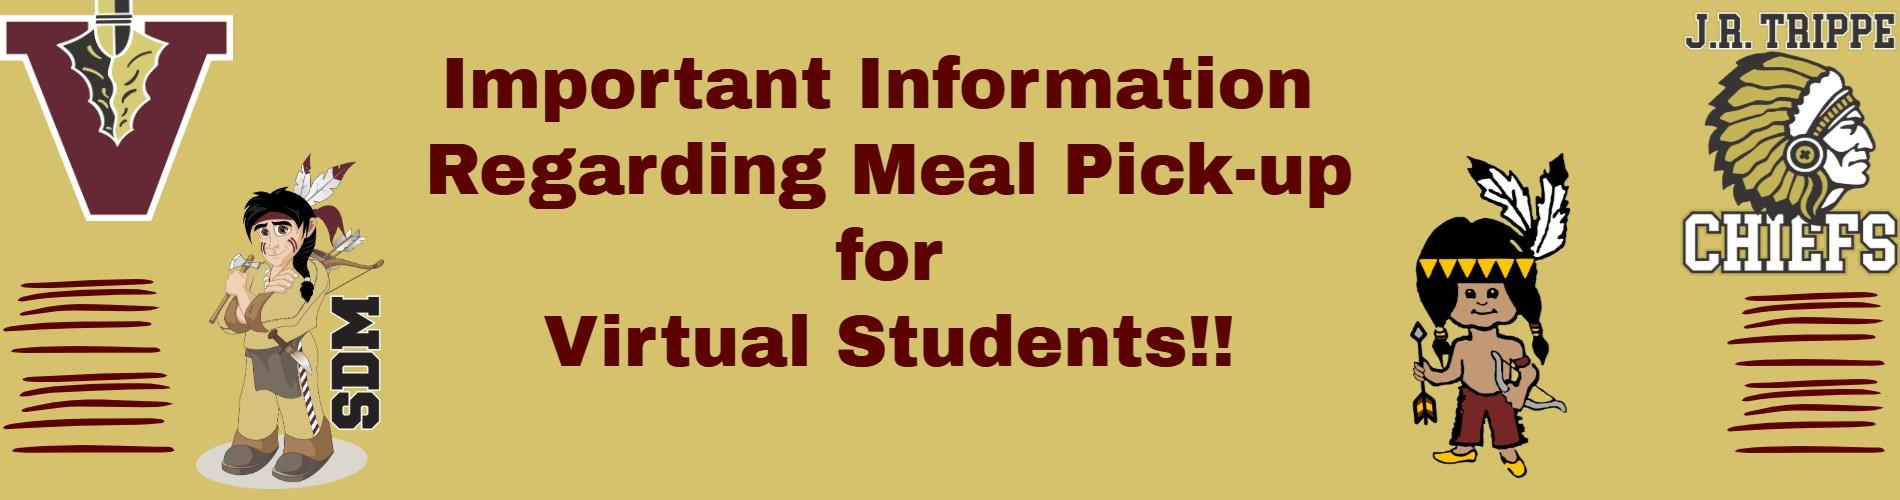 Special Announcement Concerning Meal Pick-up